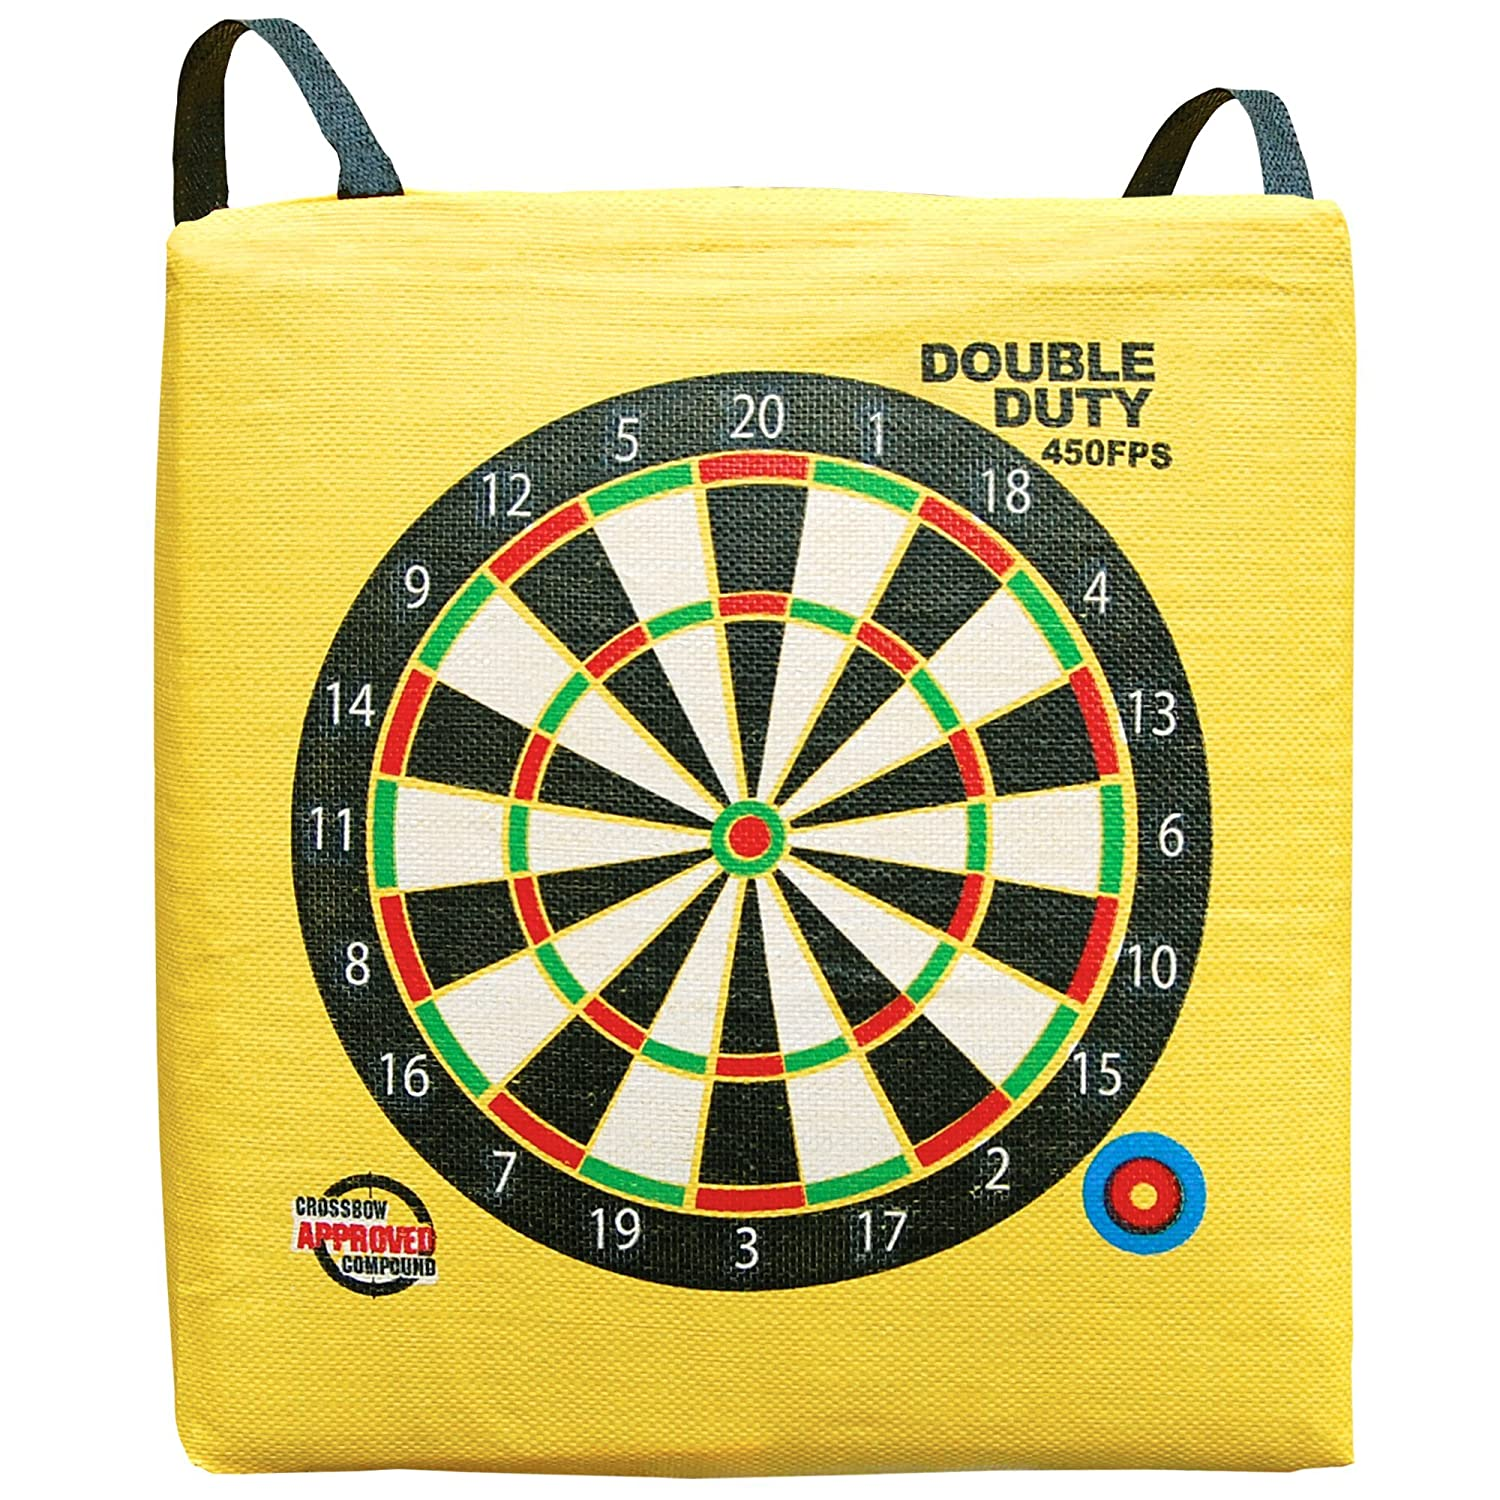 amazon com morrell double duty 450 fps field point archery bag